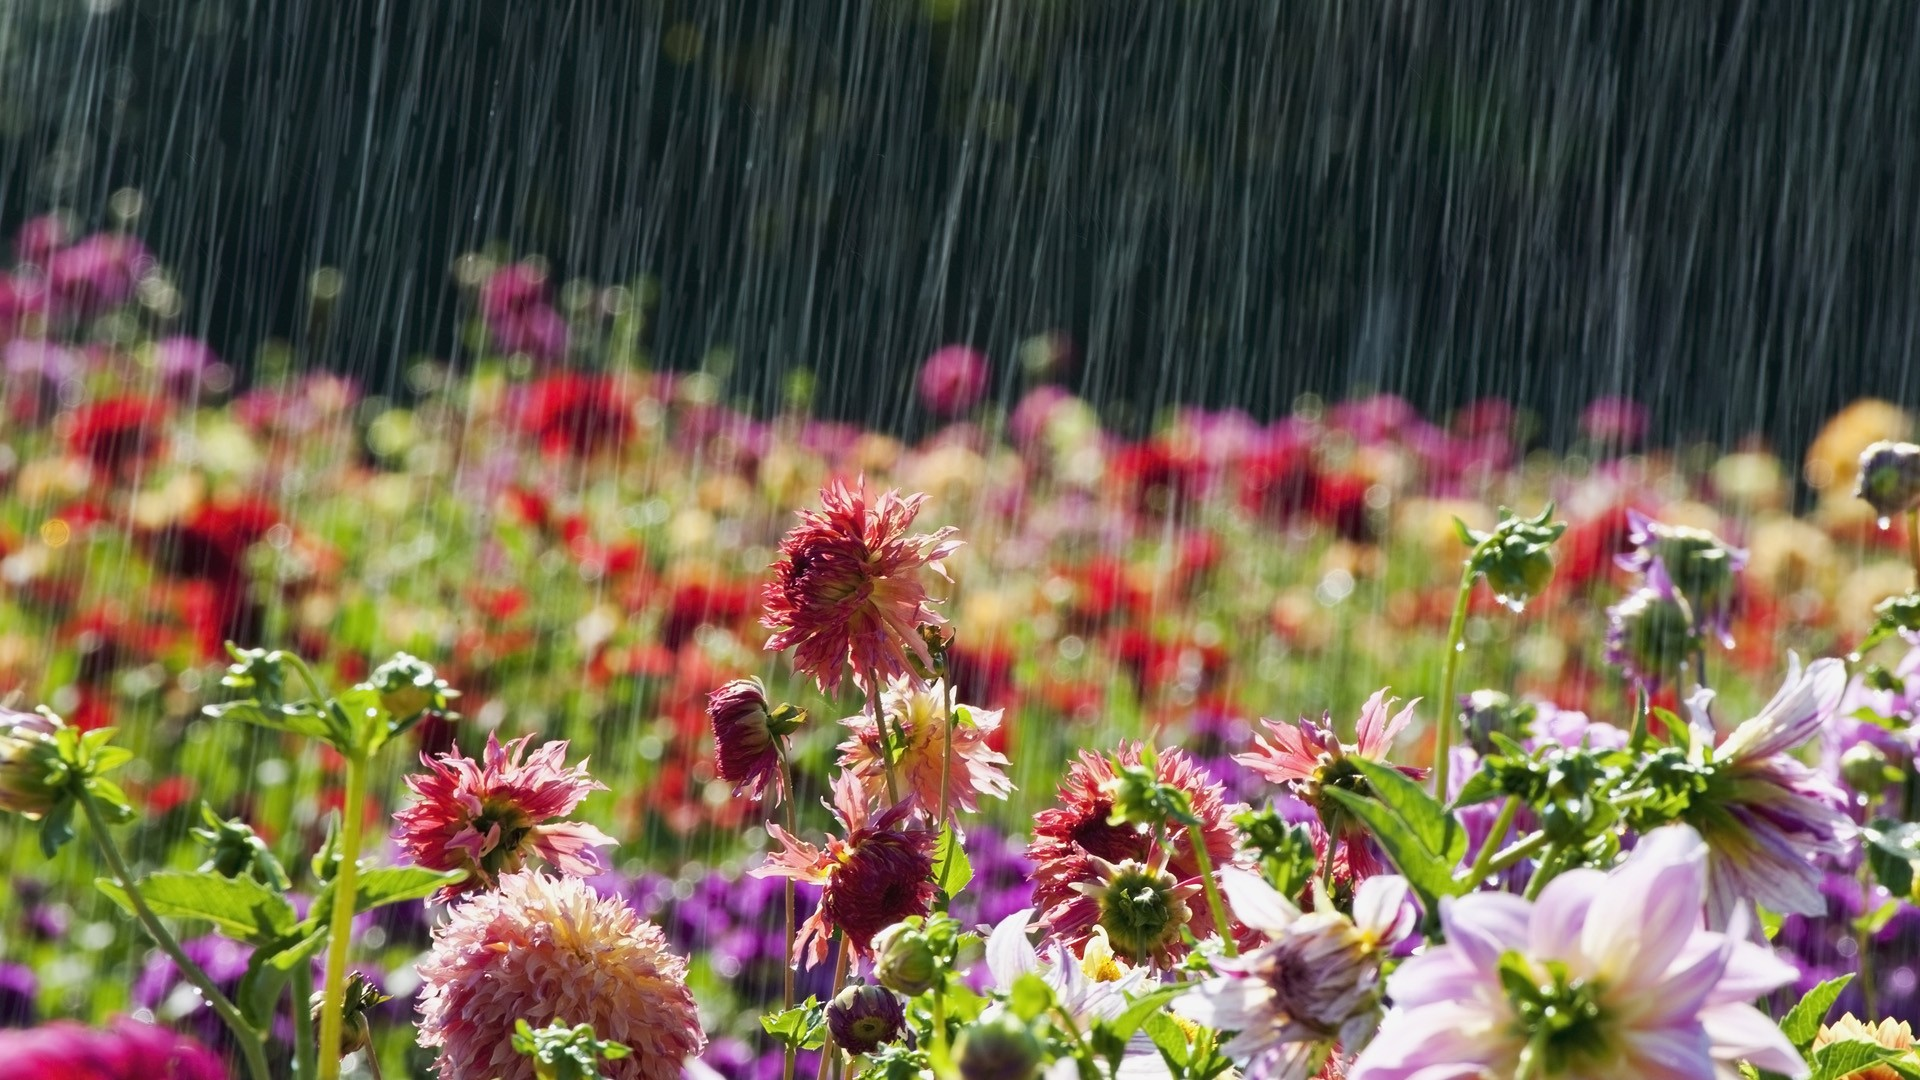 Beautiful Flowers In Rain Latest Wallpaper Hd Wallpaper